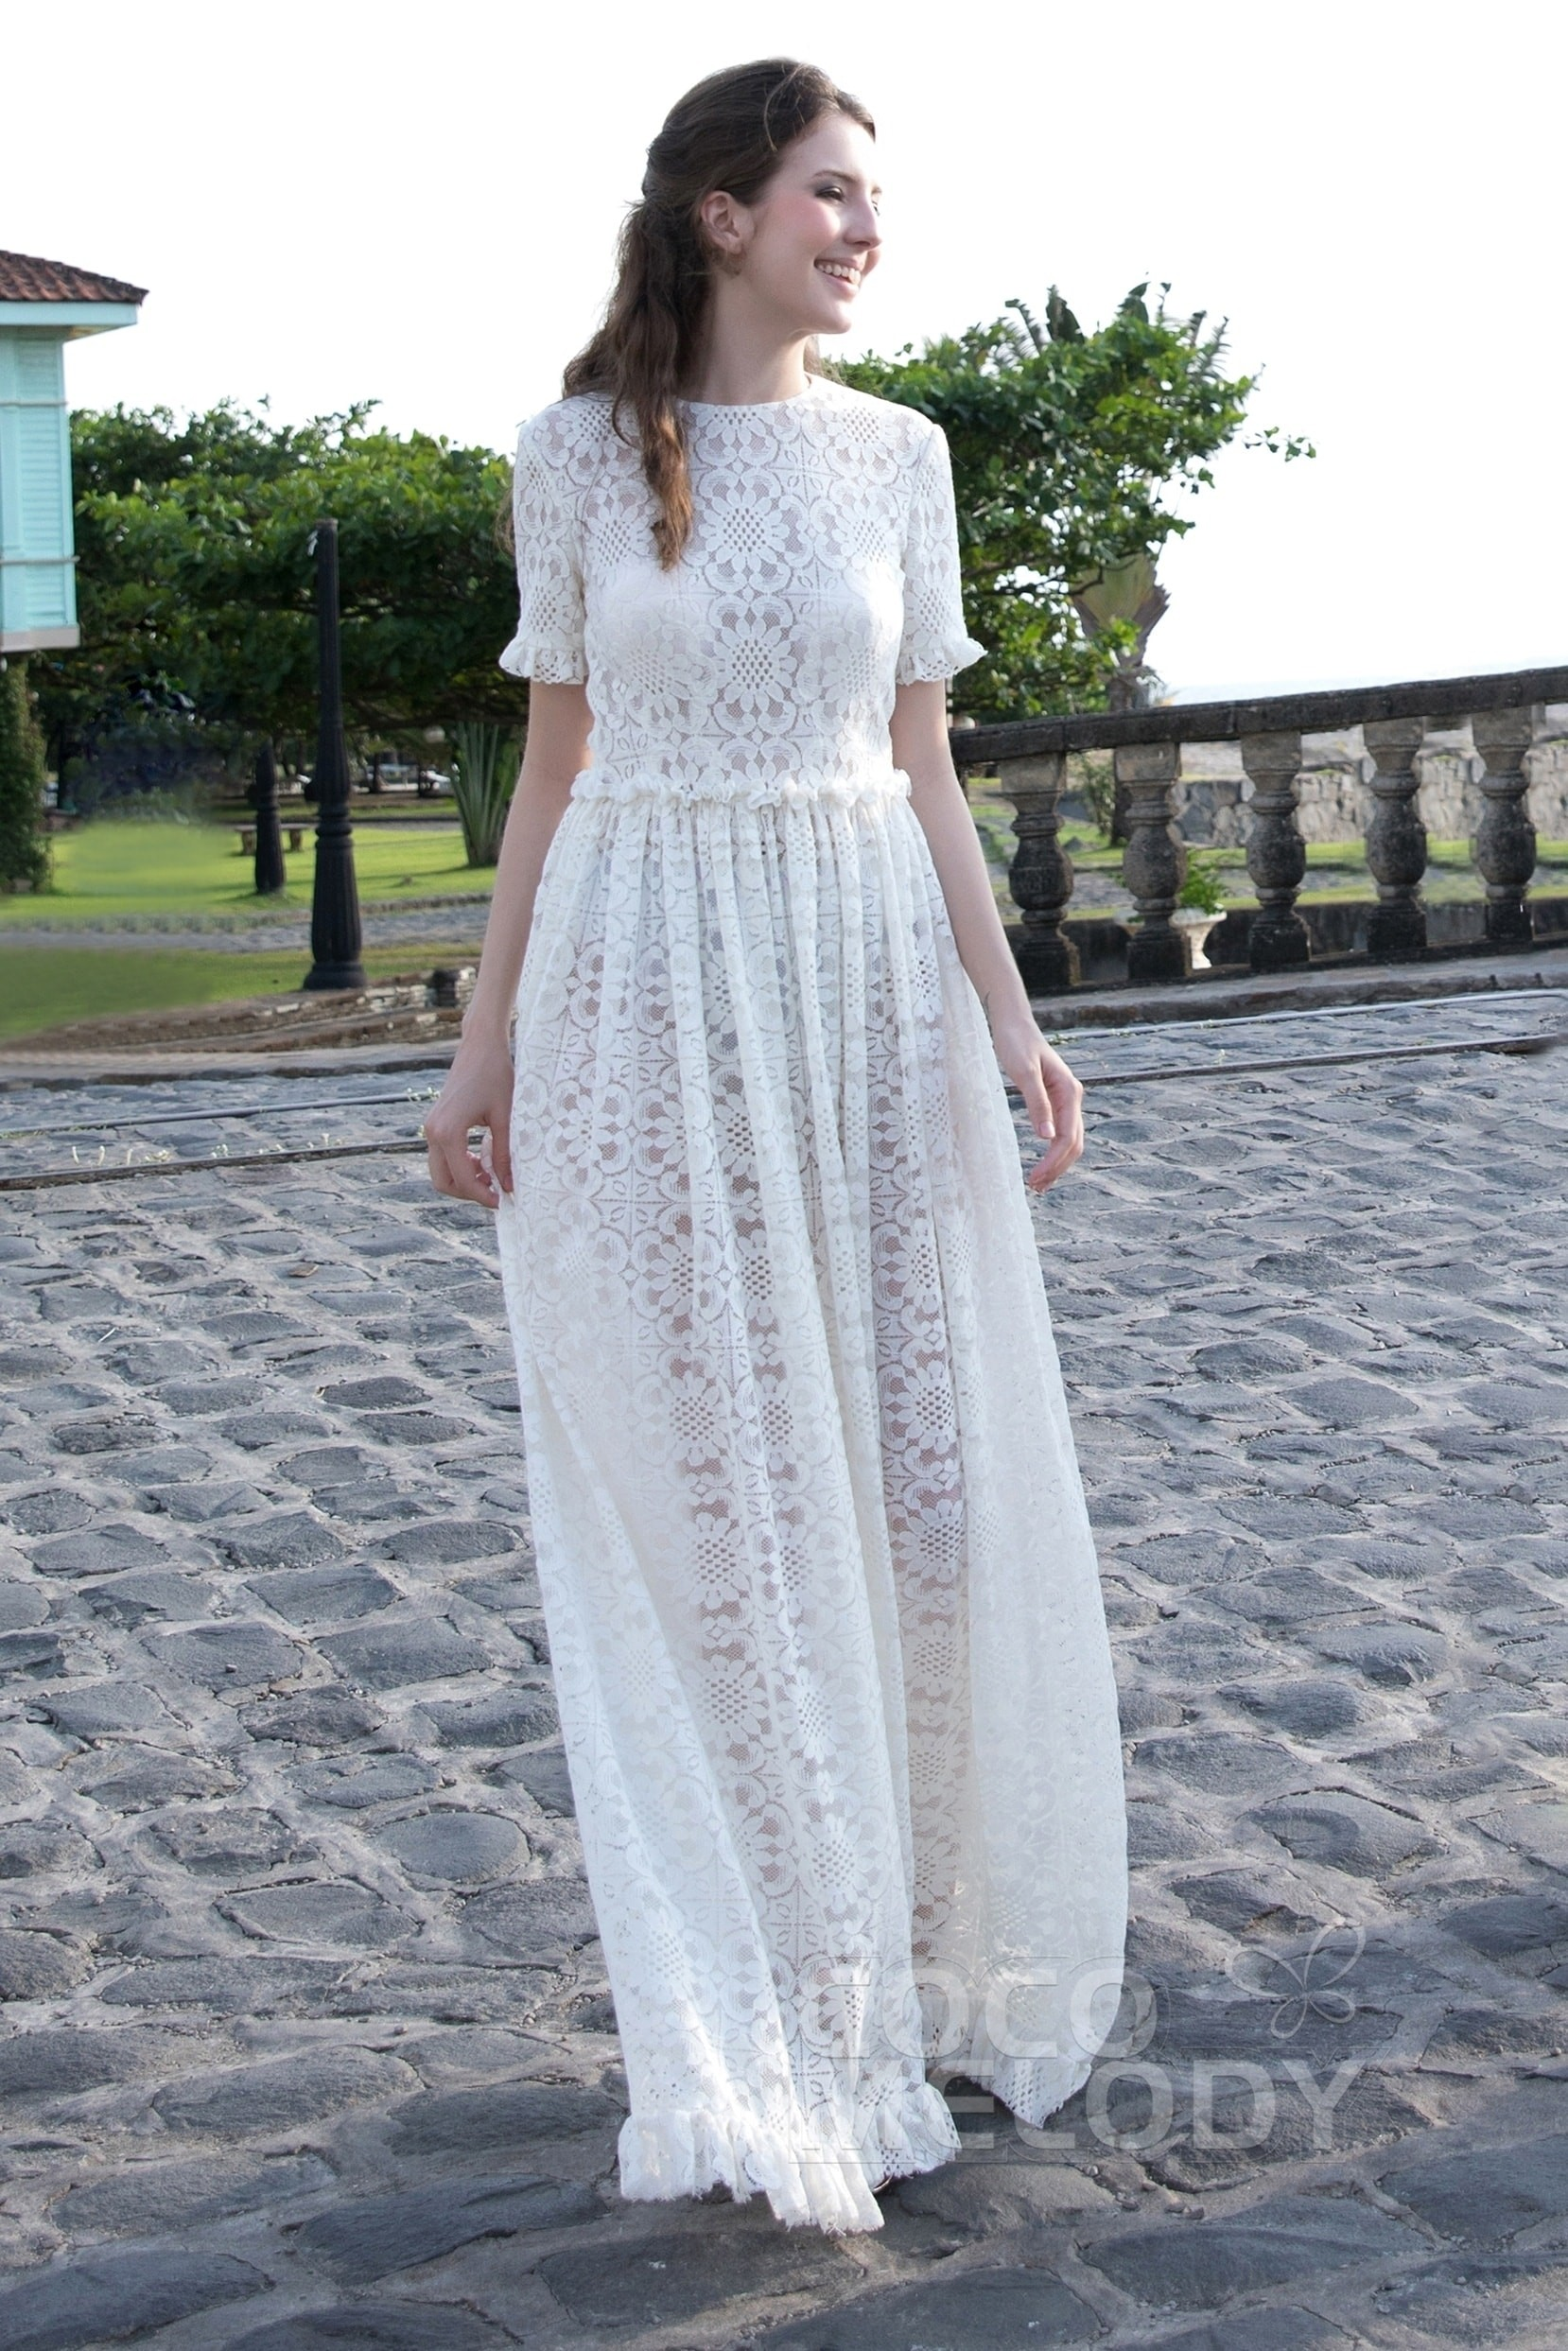 7 Bohemian wedding dresses under £700 | wedding gown